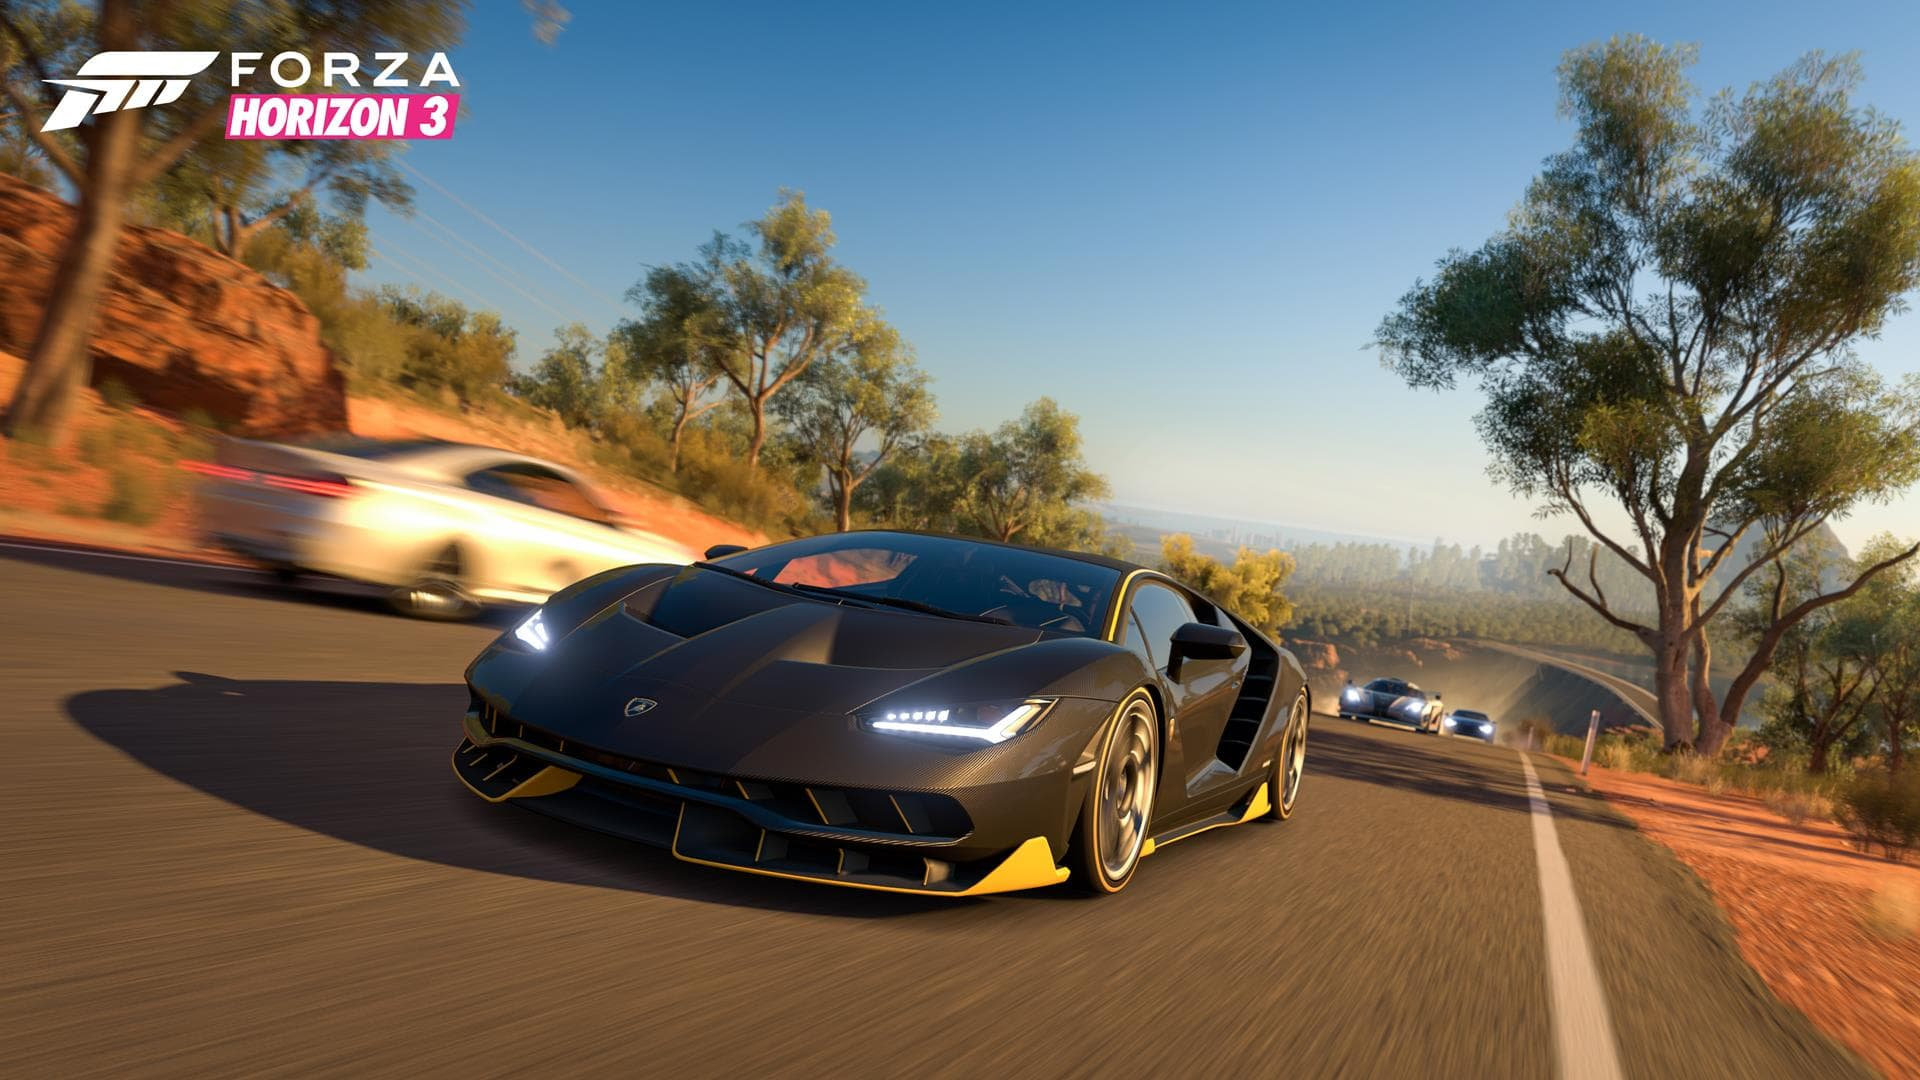 Forza Horizon 3 Full hd wallpapers